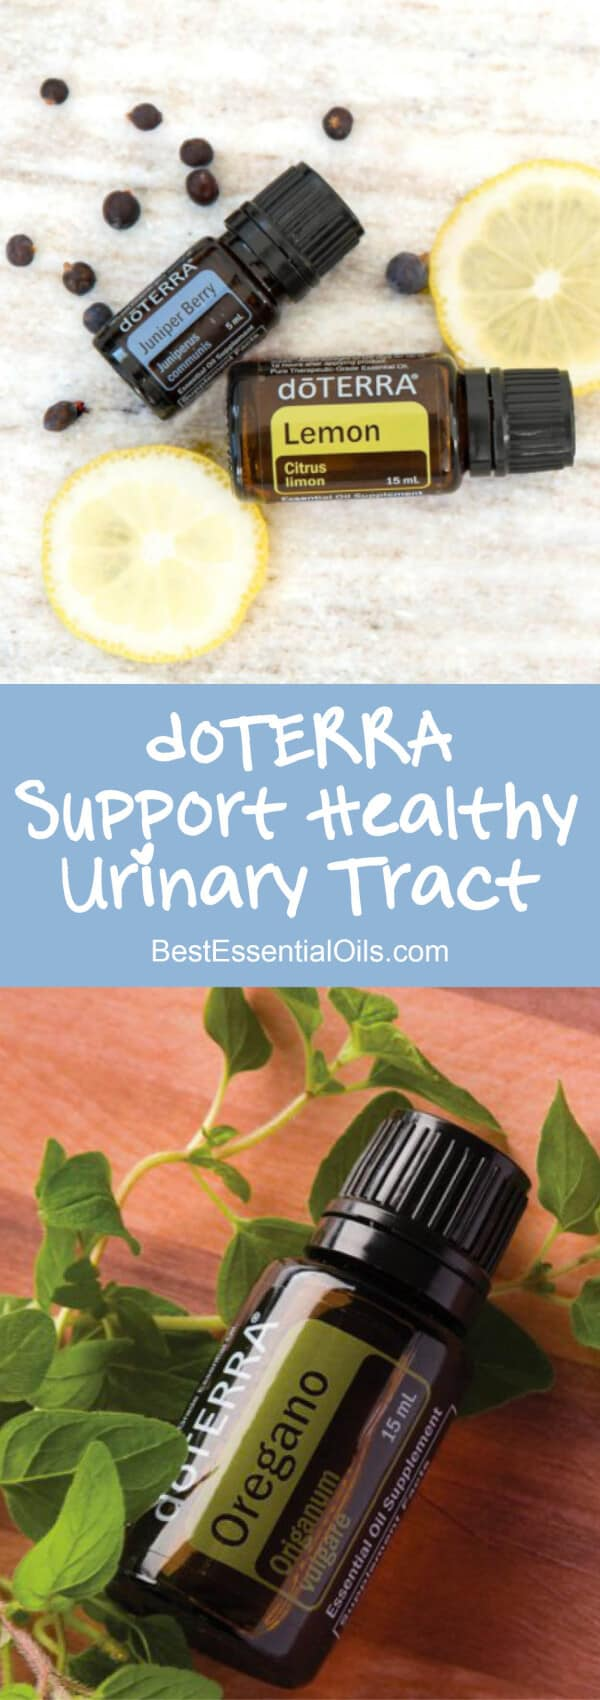 Support Your Body with doTERRA Essential Oils for Urinary Tract Health